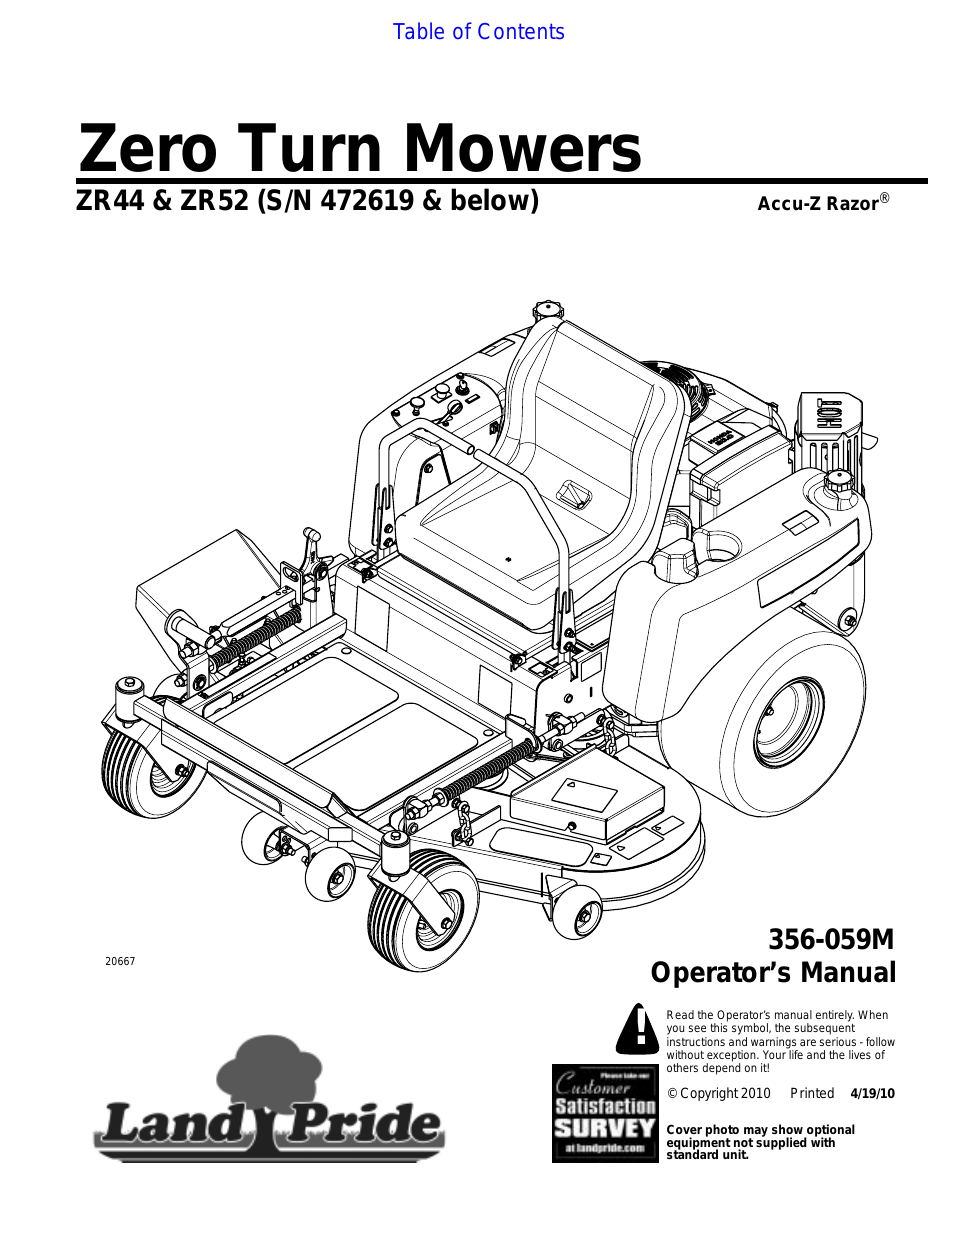 land pride mower wiring diagram zero turn mower drawing at getdrawings.com | free for ...